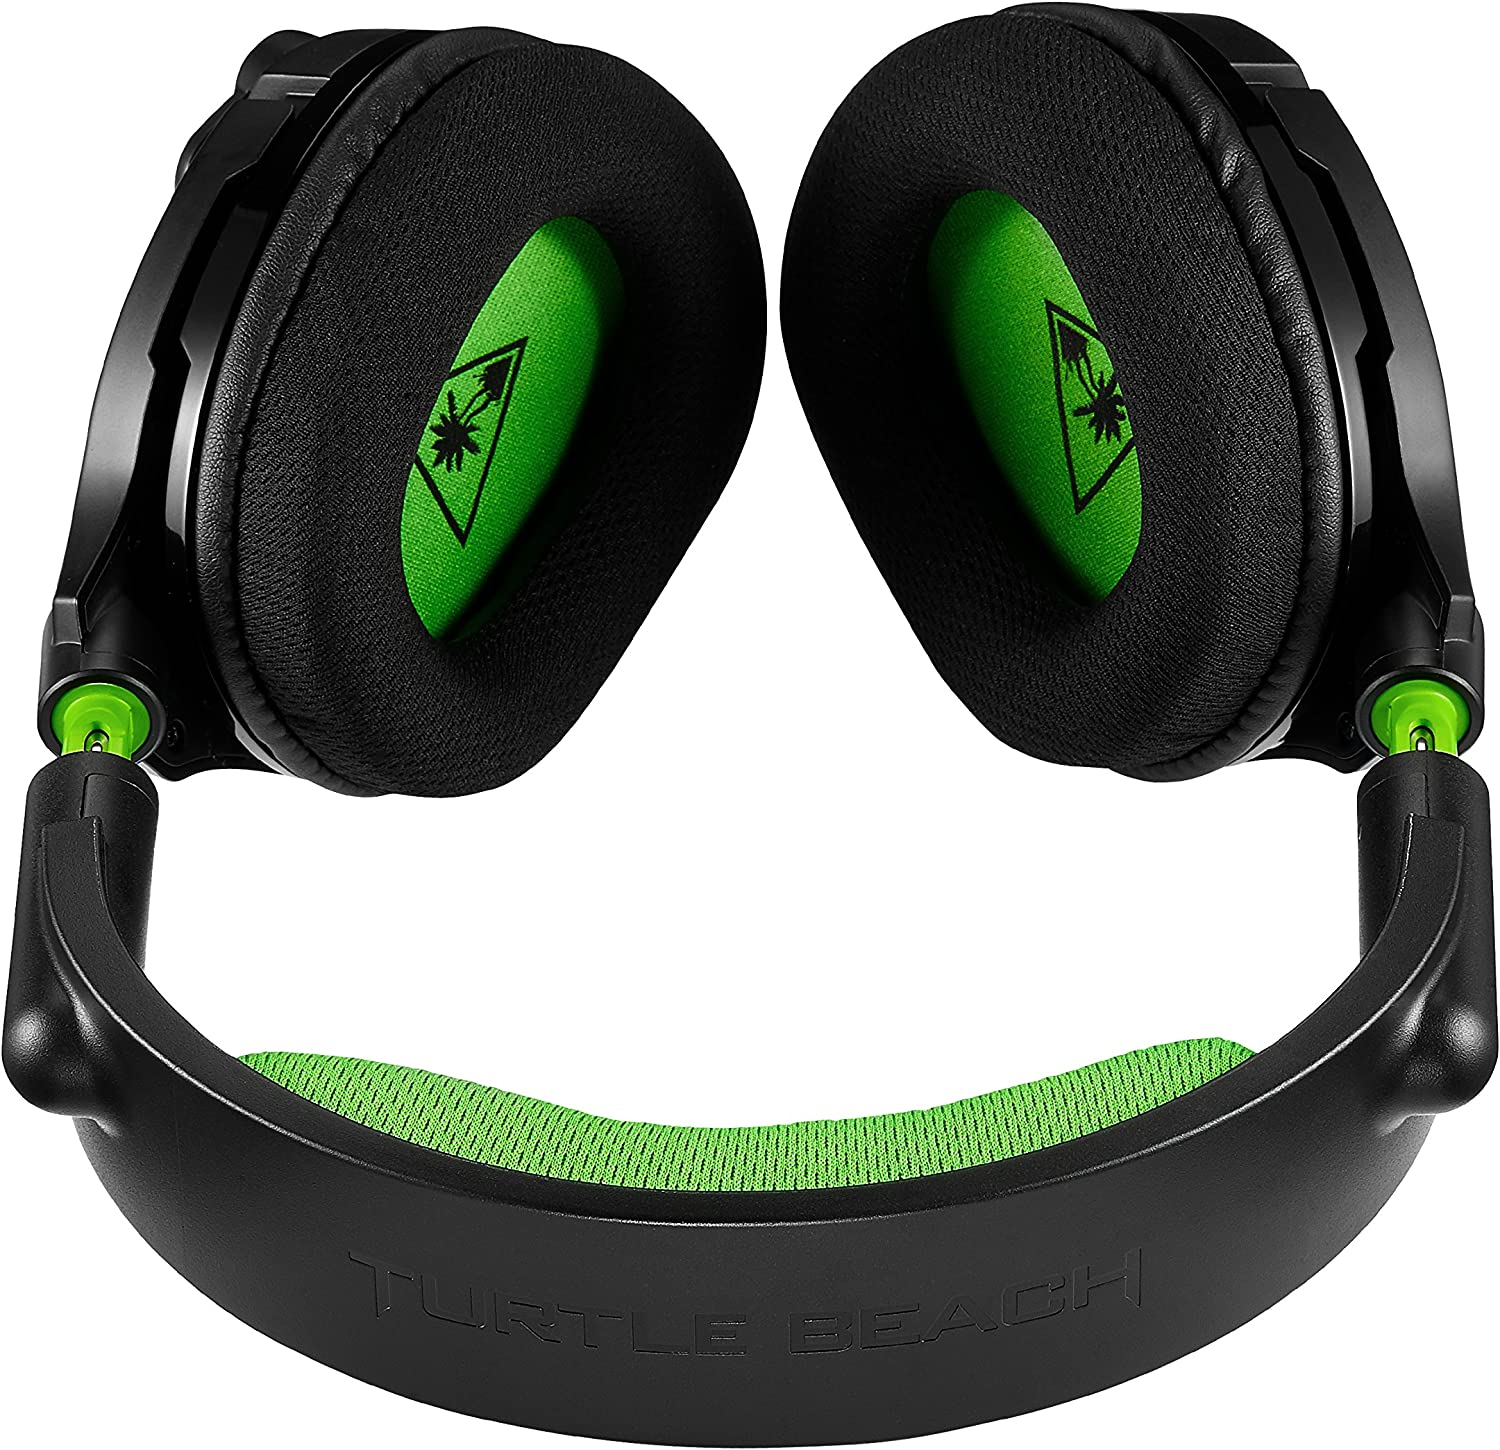 0a3a6300e77 Amazon.com: Turtle Beach Stealth 300 Amplified Surround Sound Gaming Headset  for Xbox One - Xbox One (Wired): Video Games